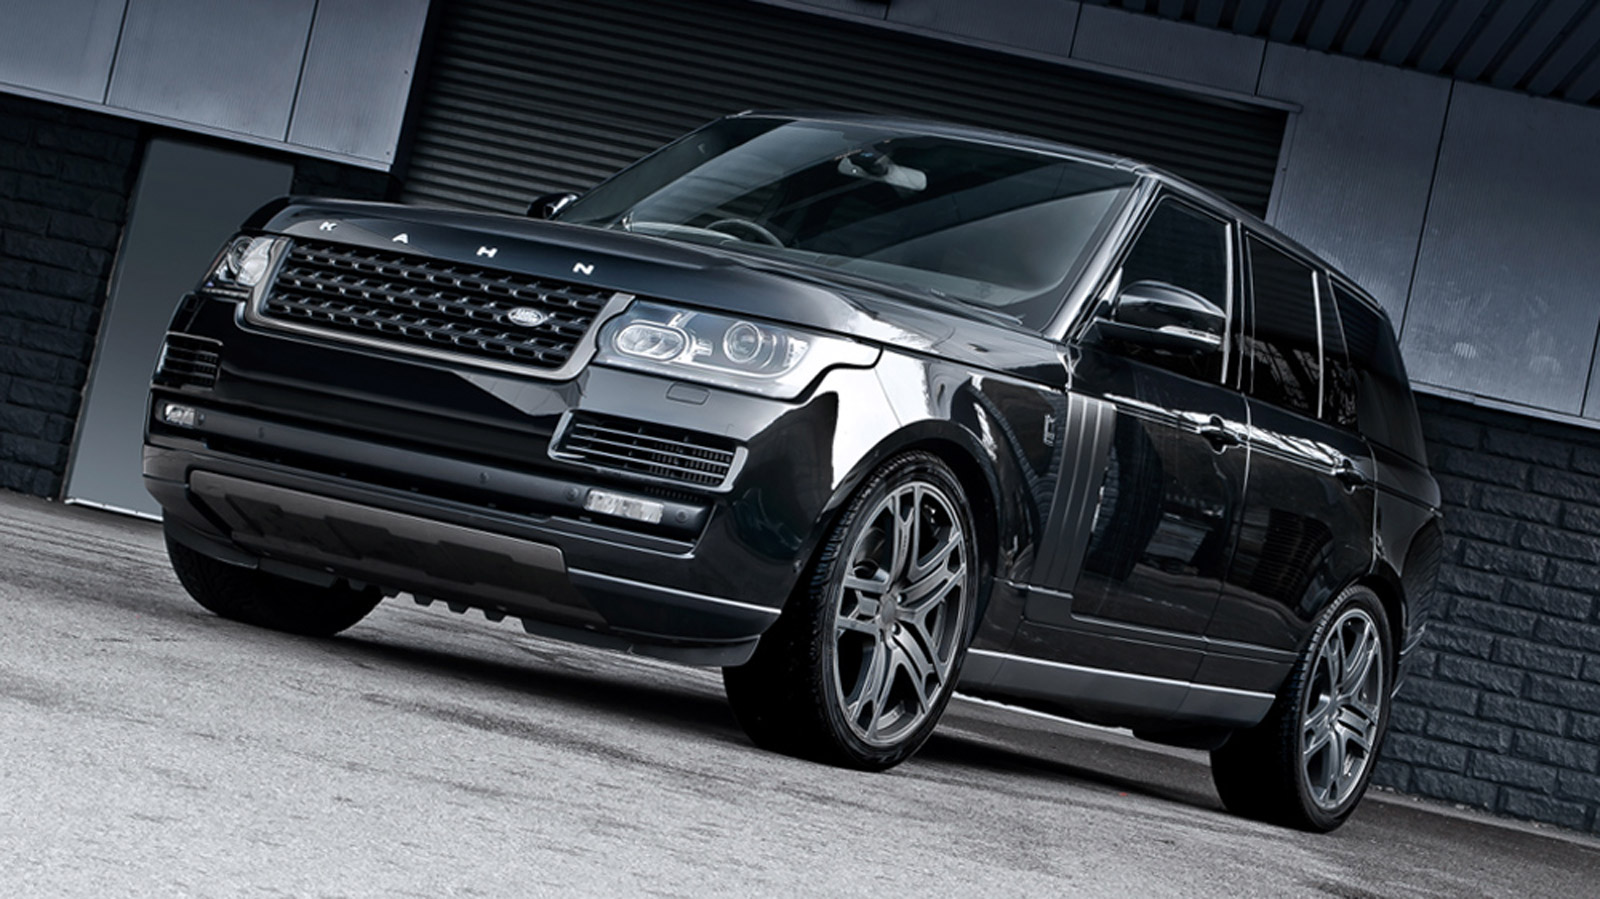 a kahn design s 2013 range rover is bespoke tuning at its. Black Bedroom Furniture Sets. Home Design Ideas